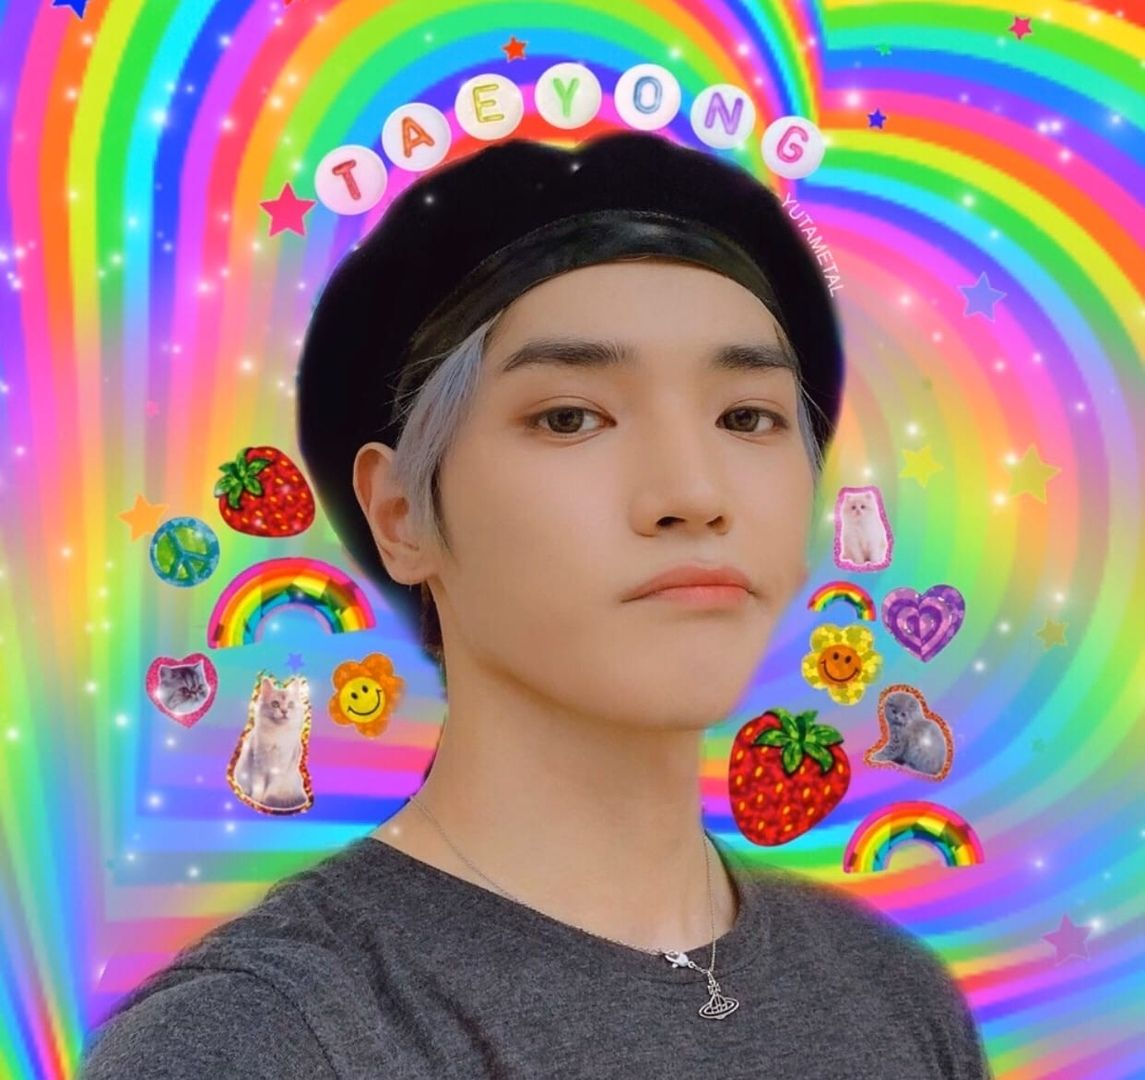 𝗵𝗮𝗿𝘂𝗺𝘂𝗻𝗶༉ ₊˚ in 2020 Rainbow aesthetic, Taeyong, Nct